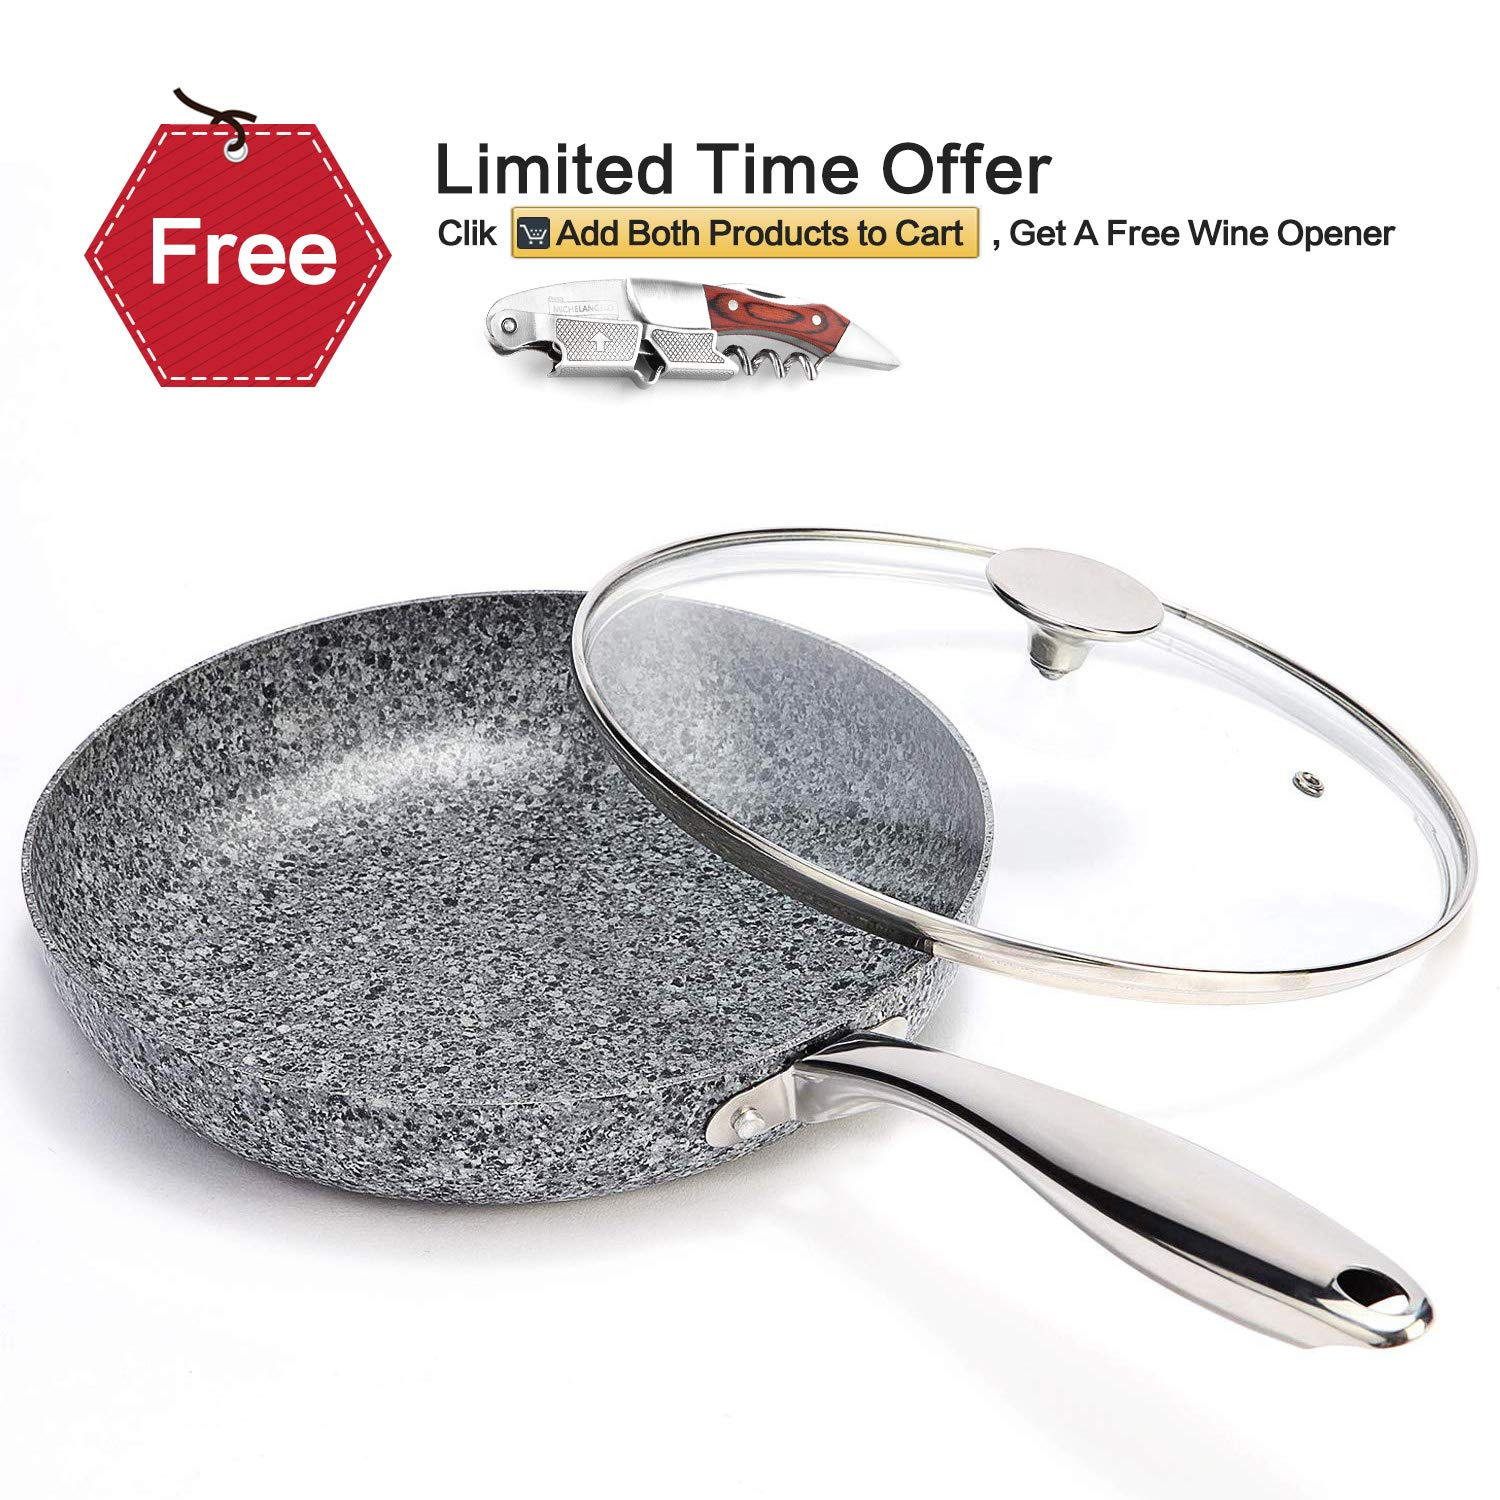 MICHELANGELO 10 Inch Frying Pan with Lid, Nonstick Stone Pan, 10 Inch Skillet with Lid, Granite Stone Pan Induction Compatible - Grey